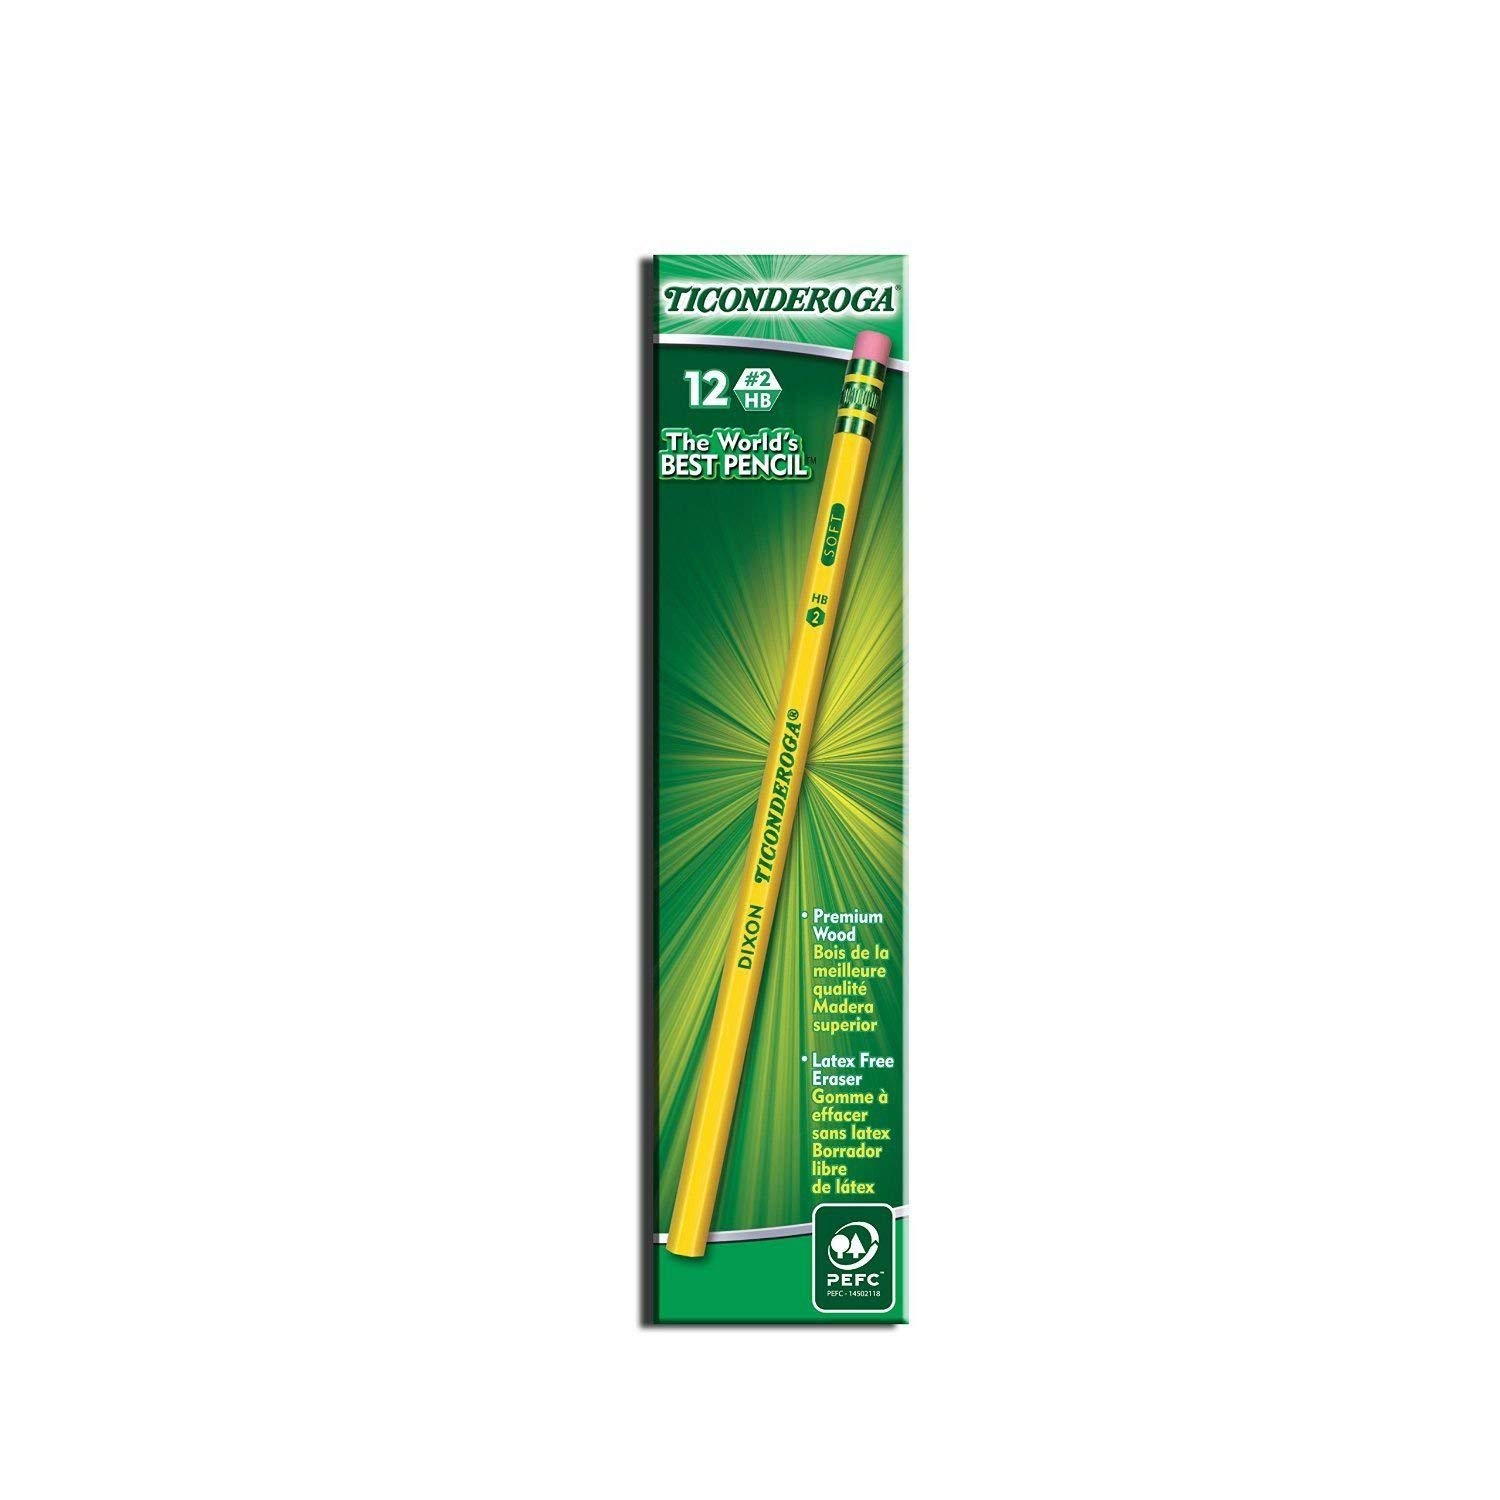 IUYE Ticonderoga Wood-Cased 2 HB Pencils, Box of 96, Yellow 2 Pack by  (Image #2)